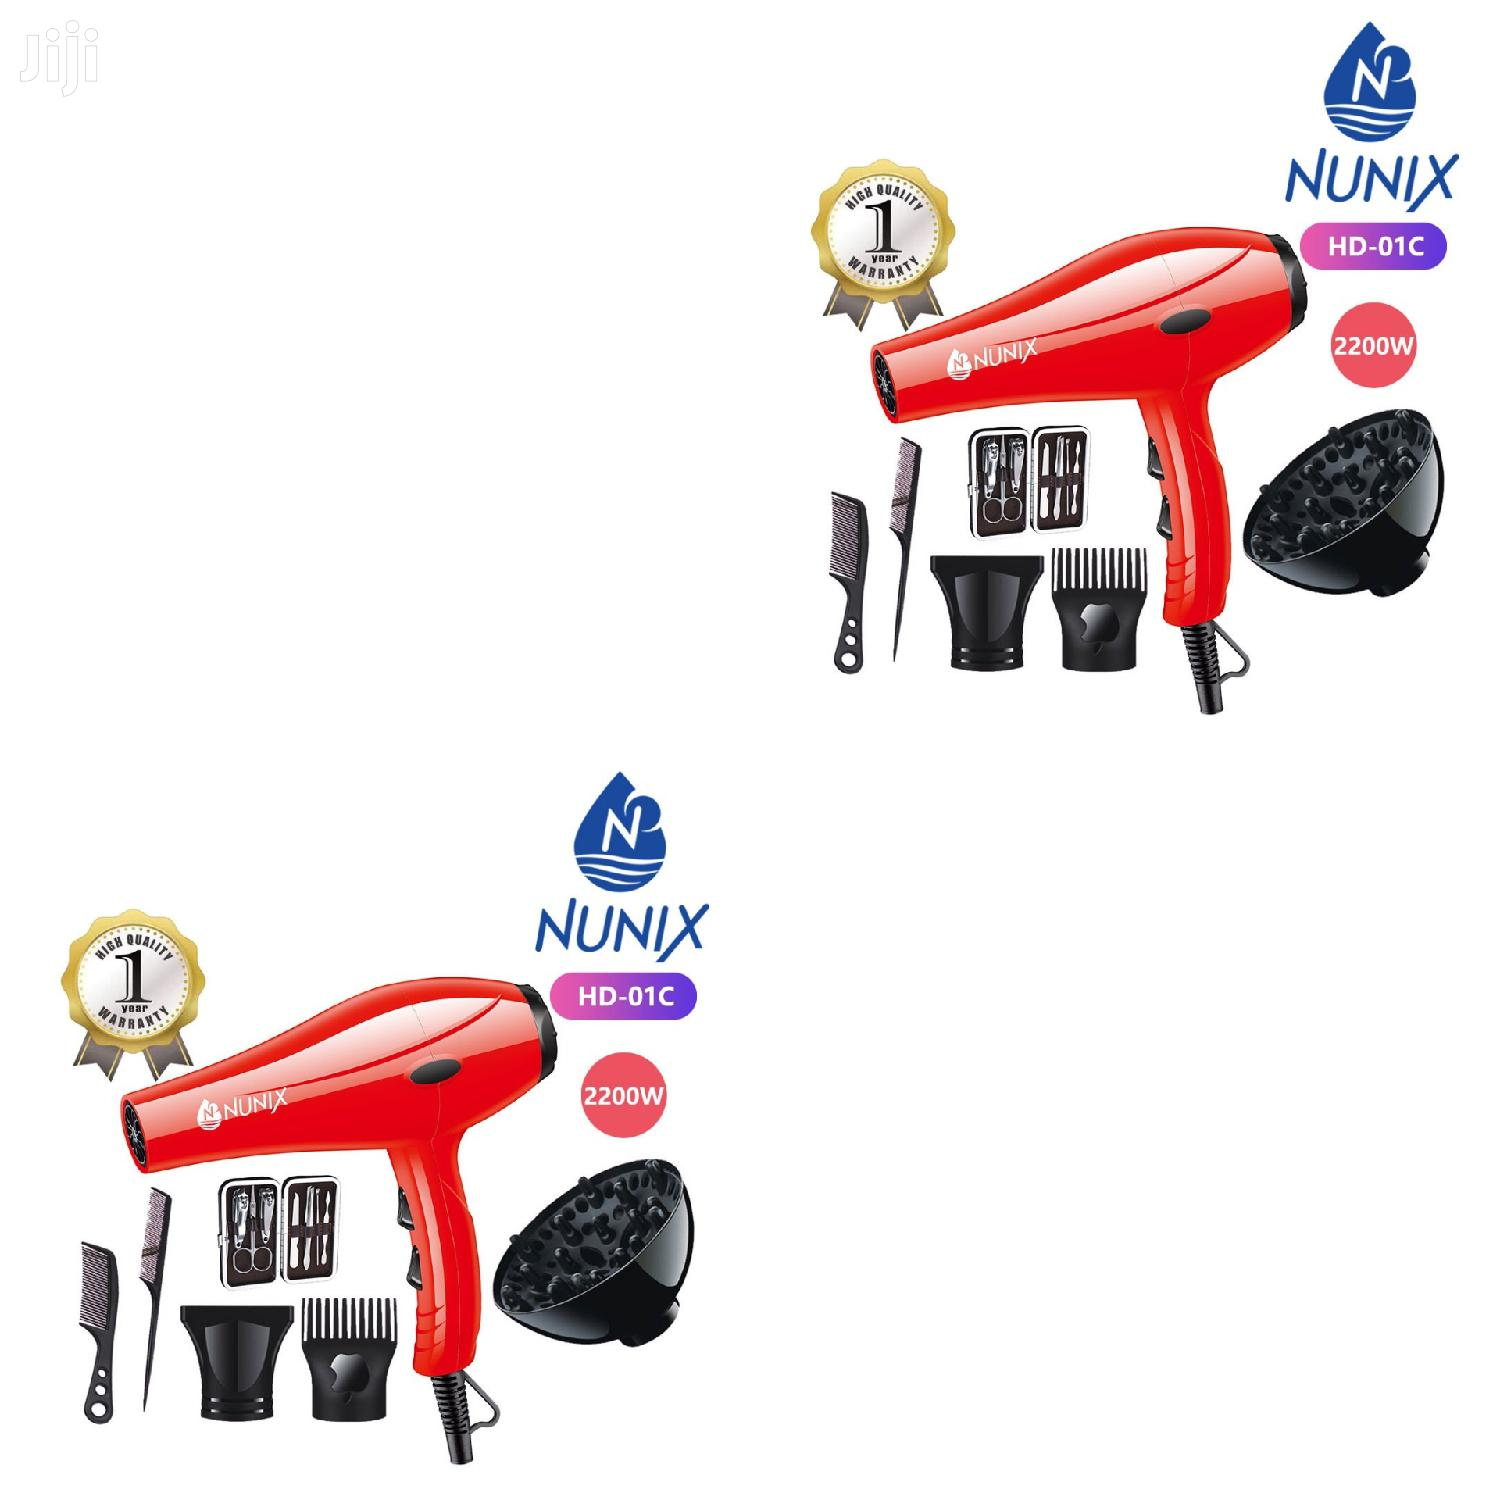 Nunix Blowdry With Manicure Set Available